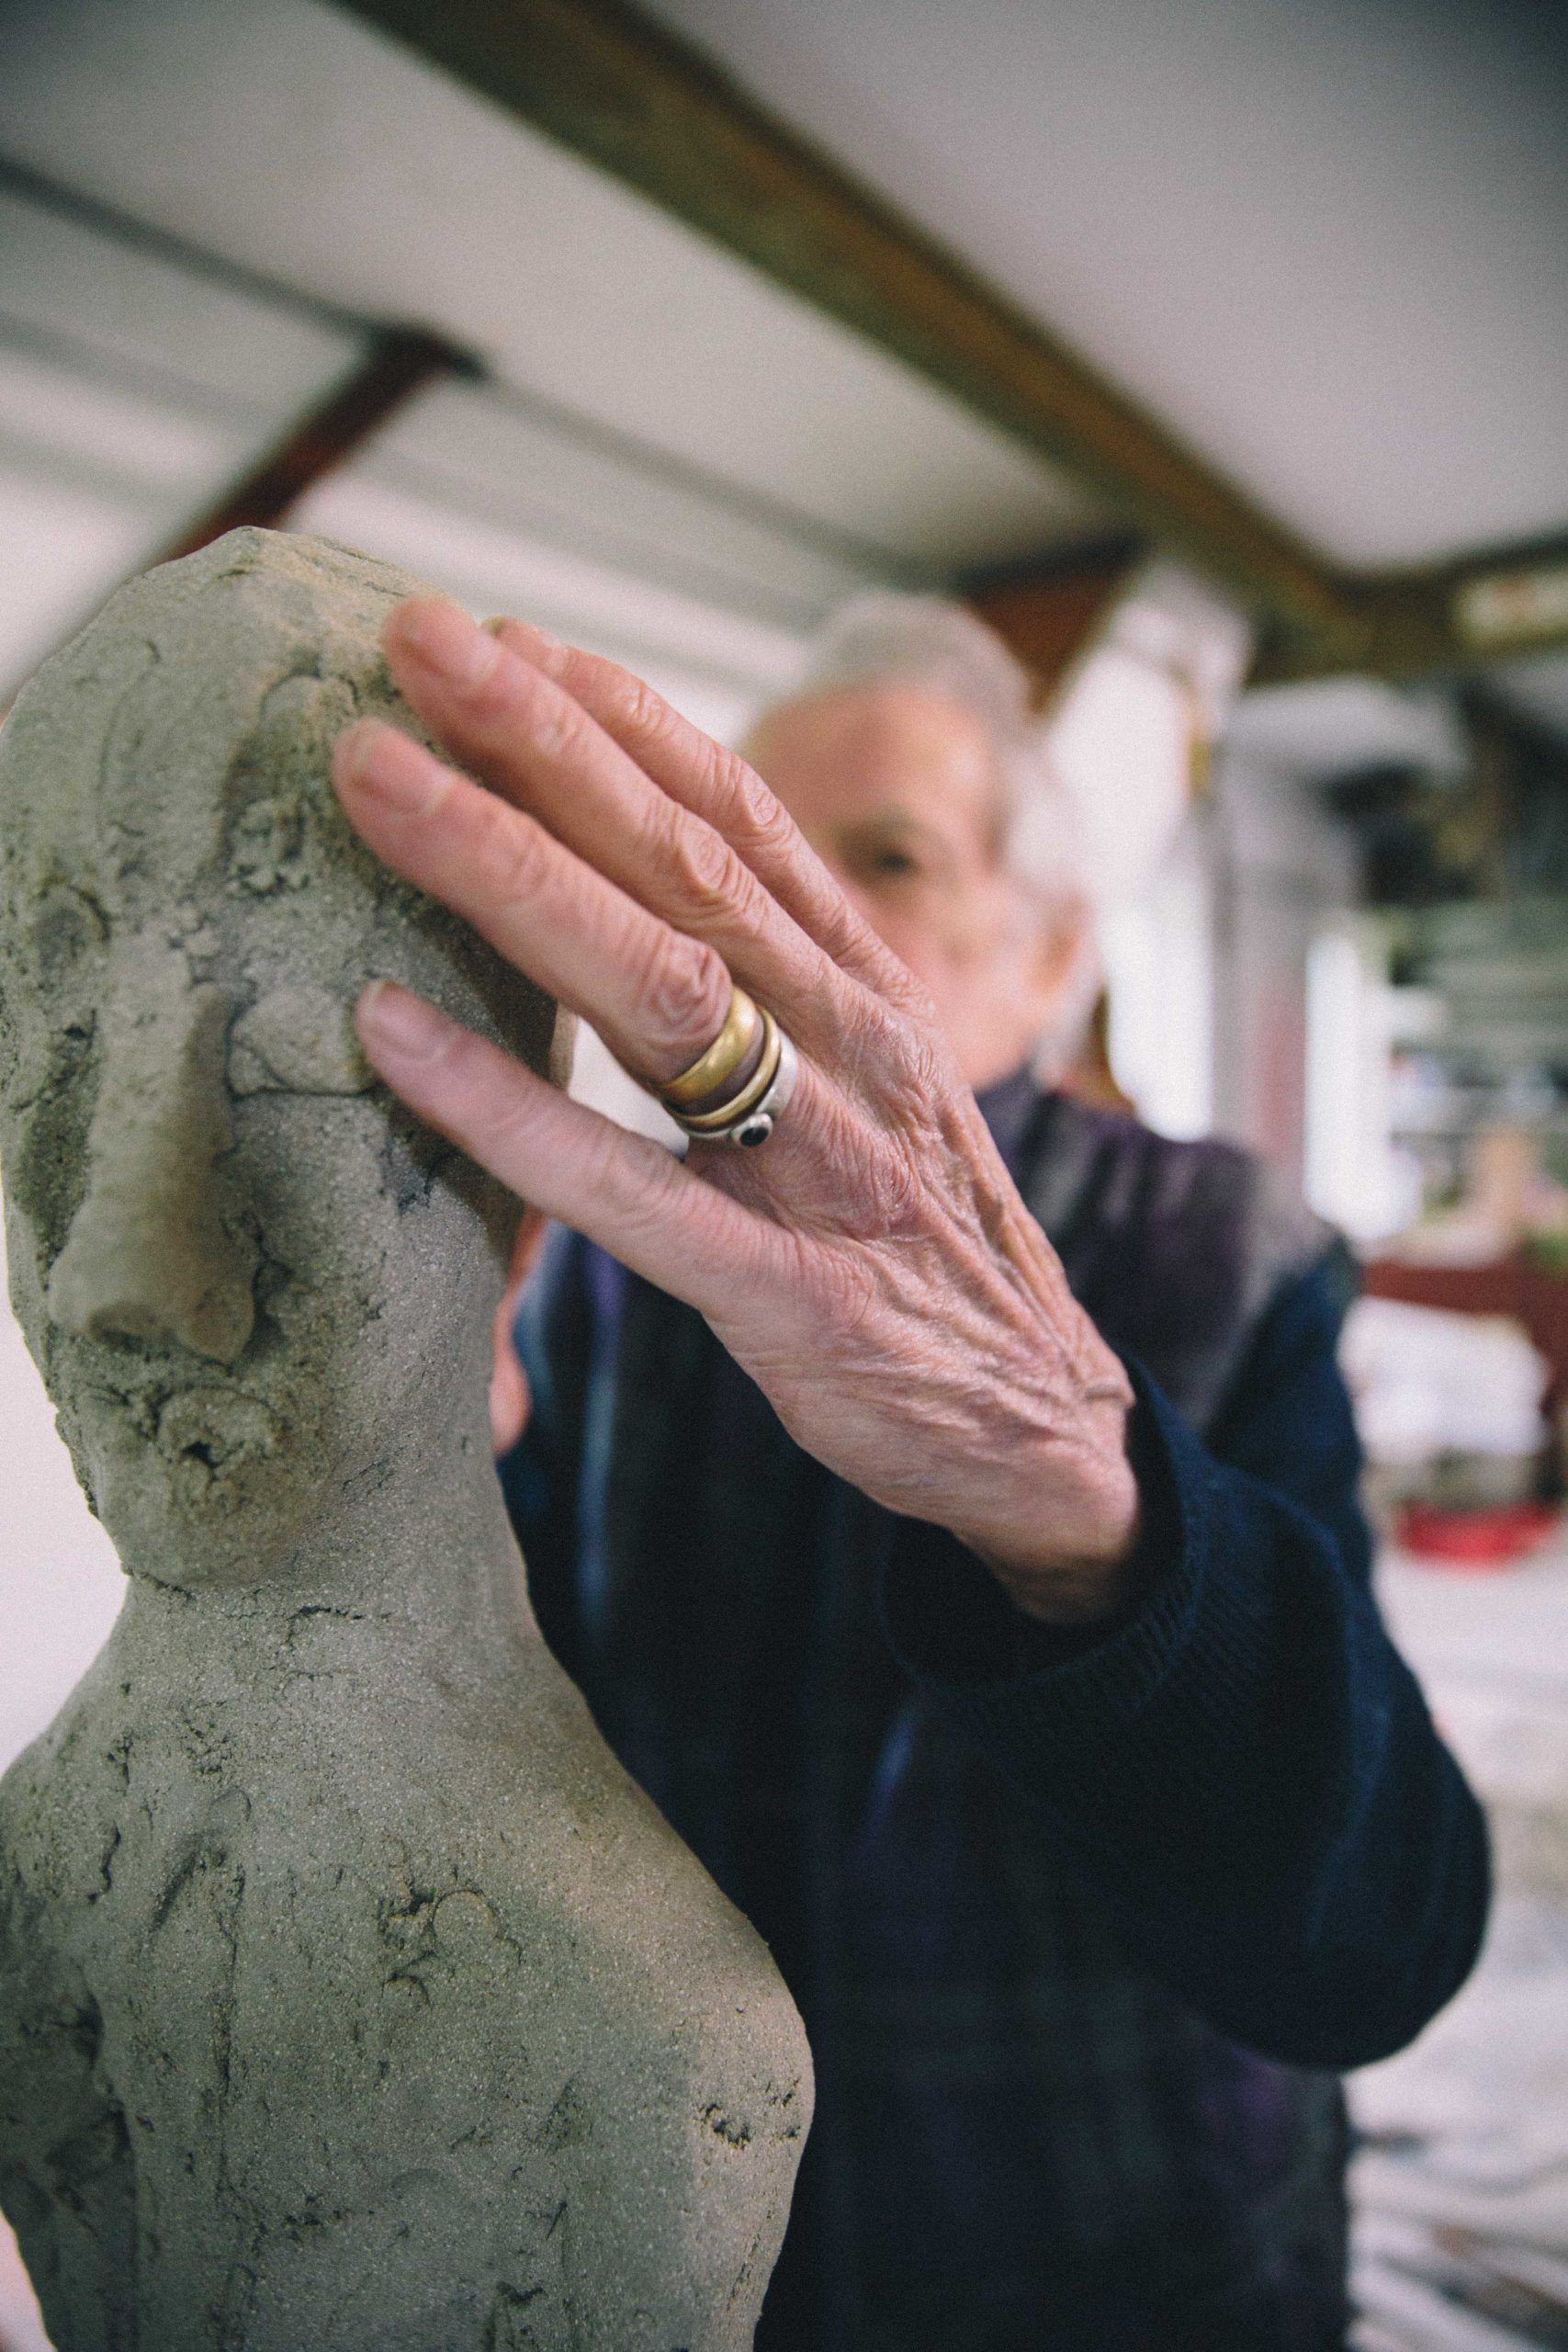 Ian Gregory hand sculpting clay